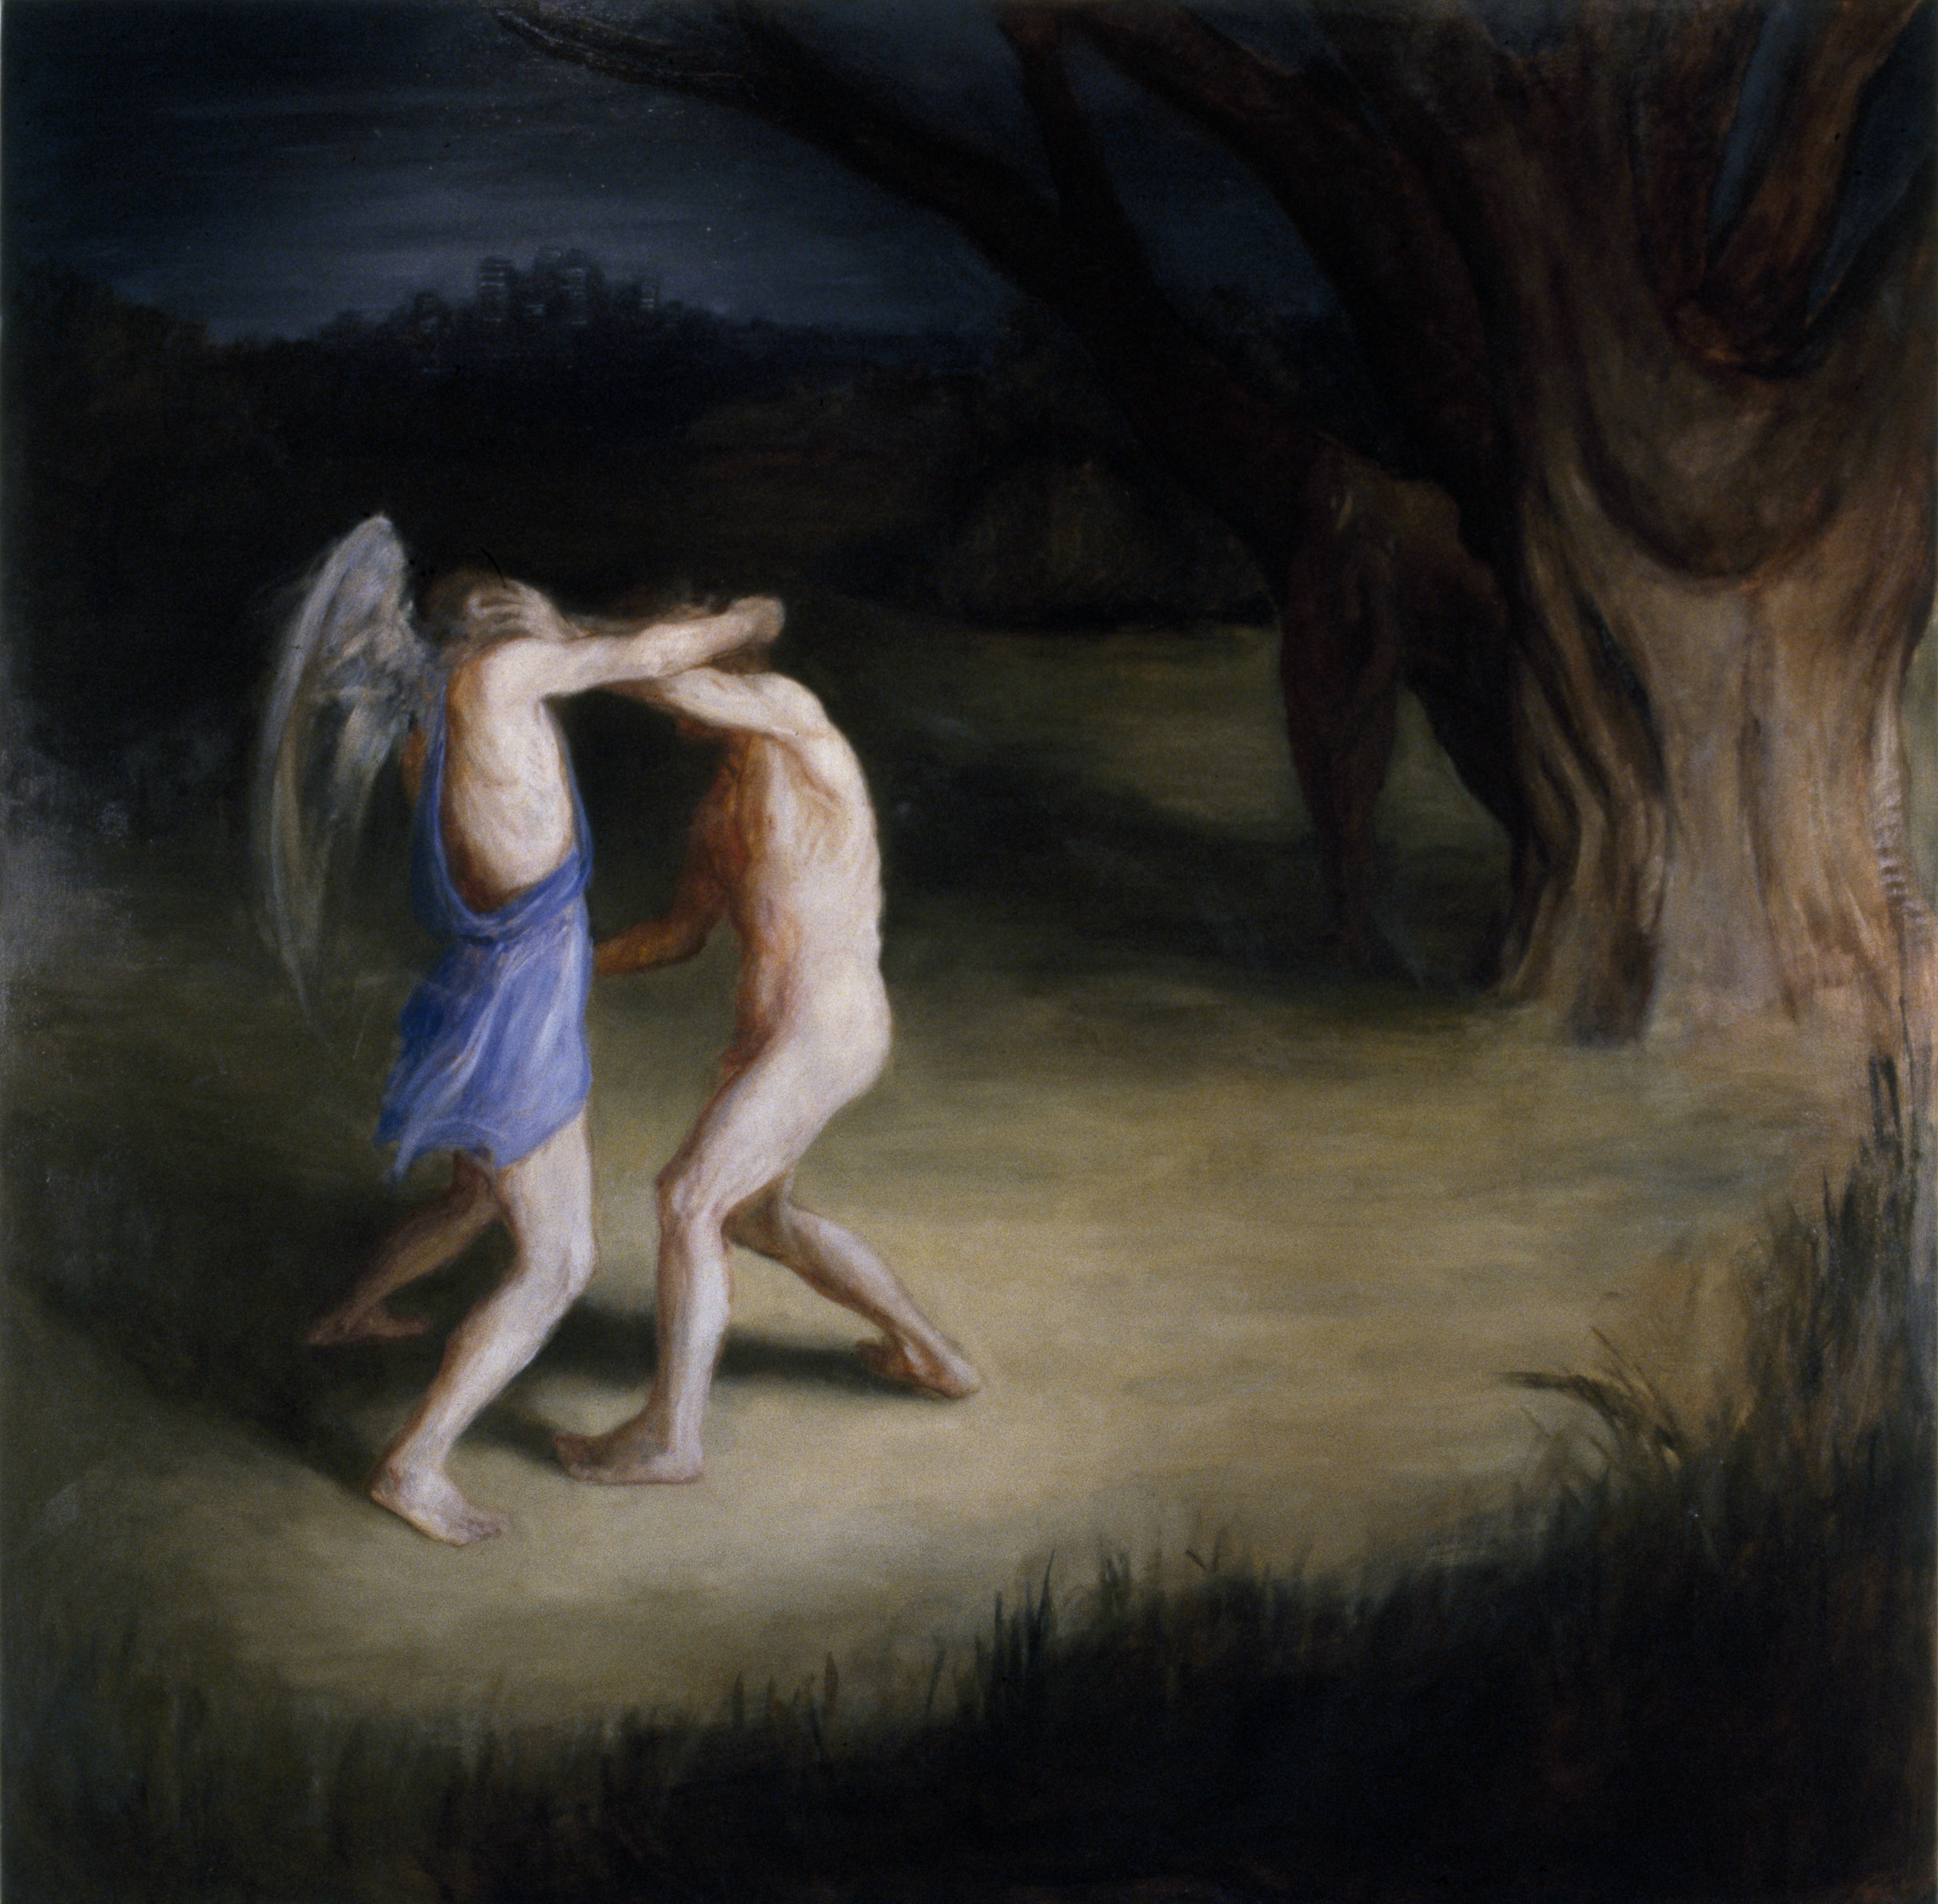 Jacob and the Angel II, 1988, oil on canvas, 1800 x 1800mm